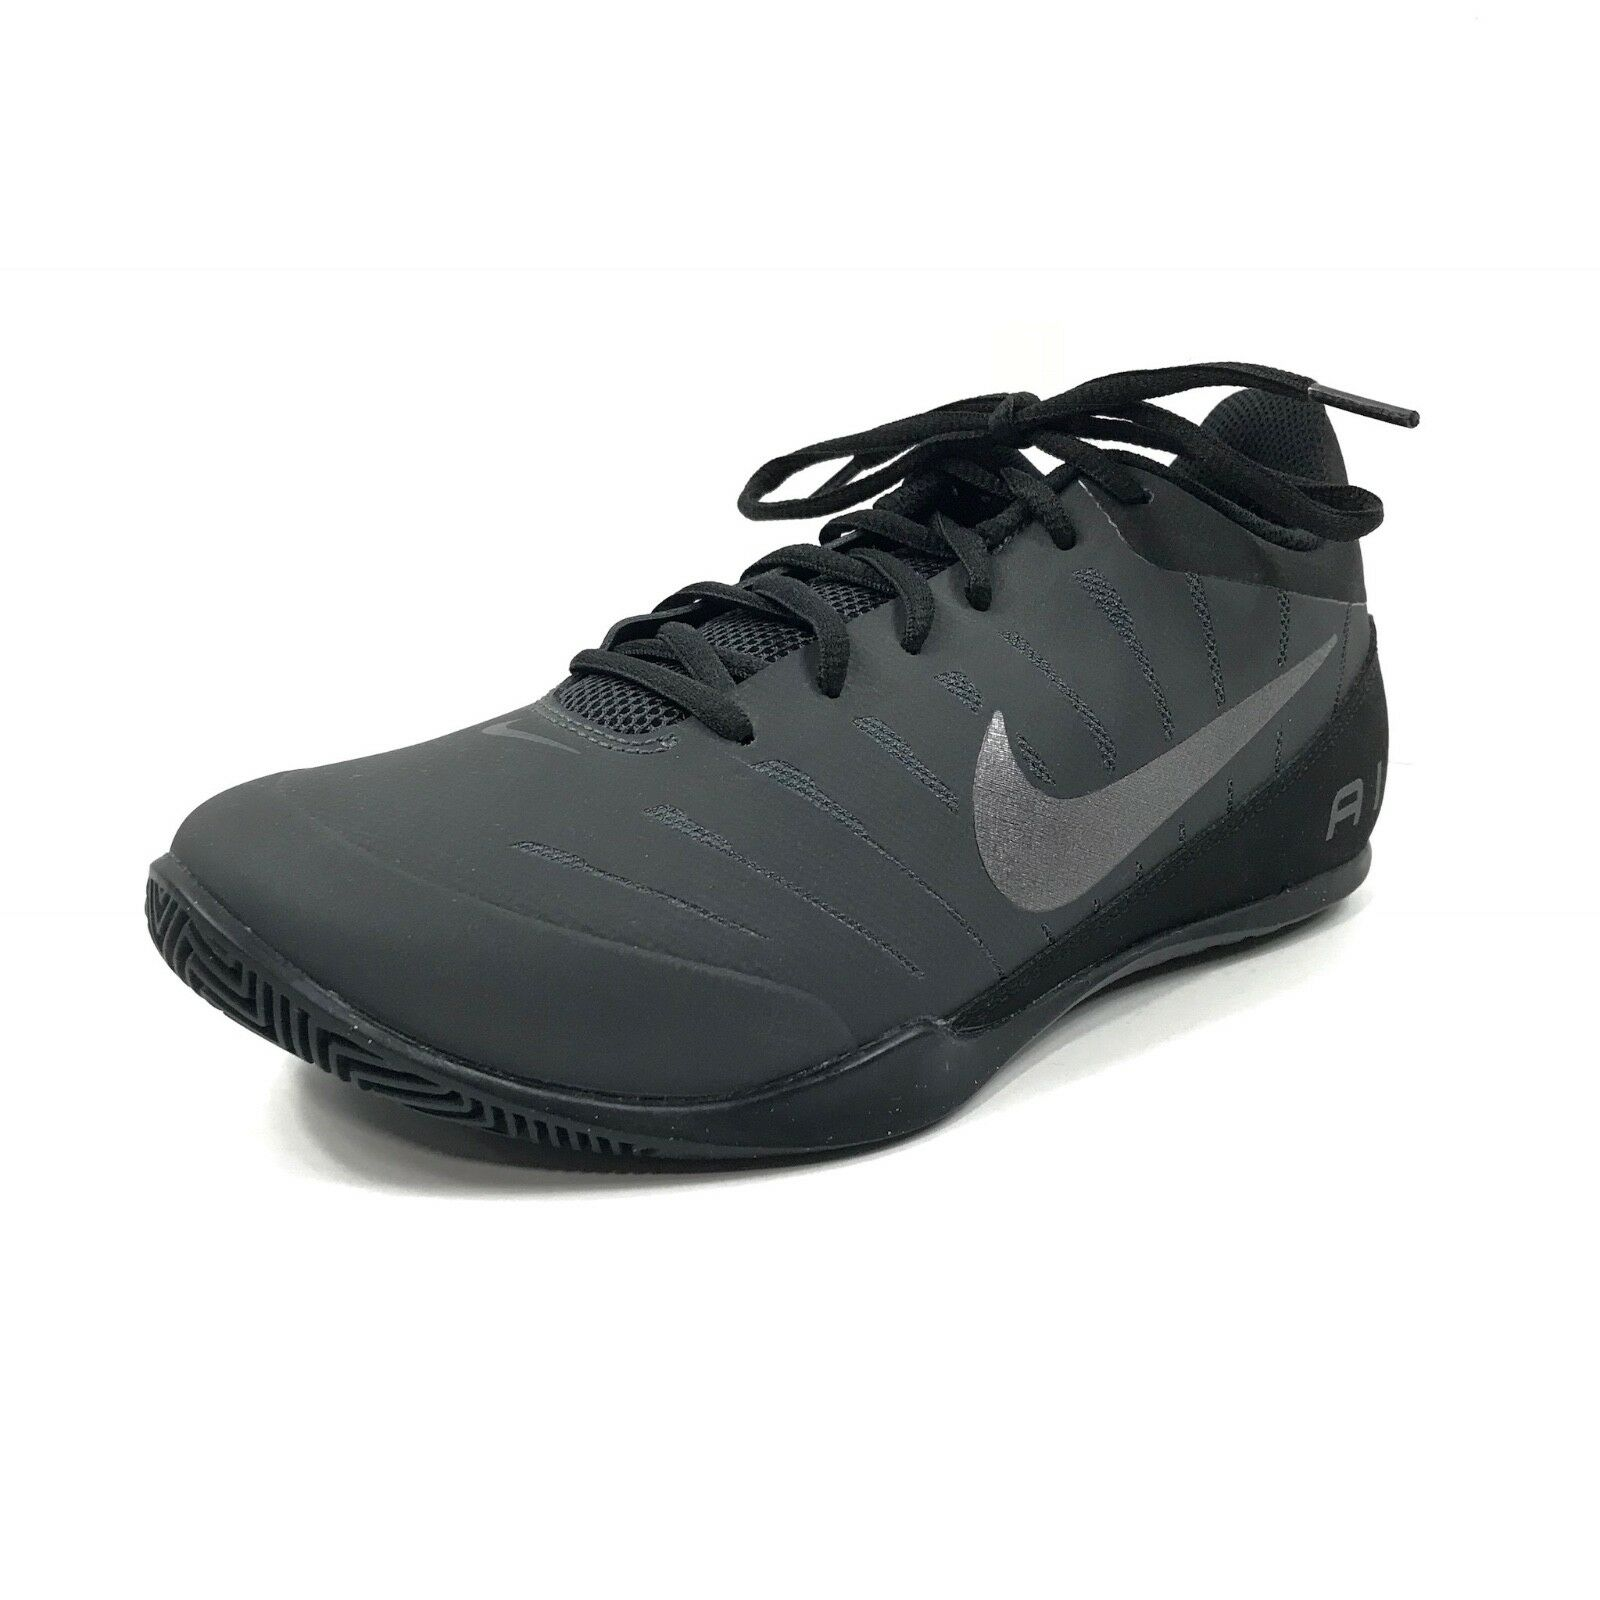 Nike Mens Air Marvin Low 2 Basketball Shoes Anthracite Black Sz 7.5 830368-003 Cheap women's shoes women's shoes New shoes for men and women, limited time discount